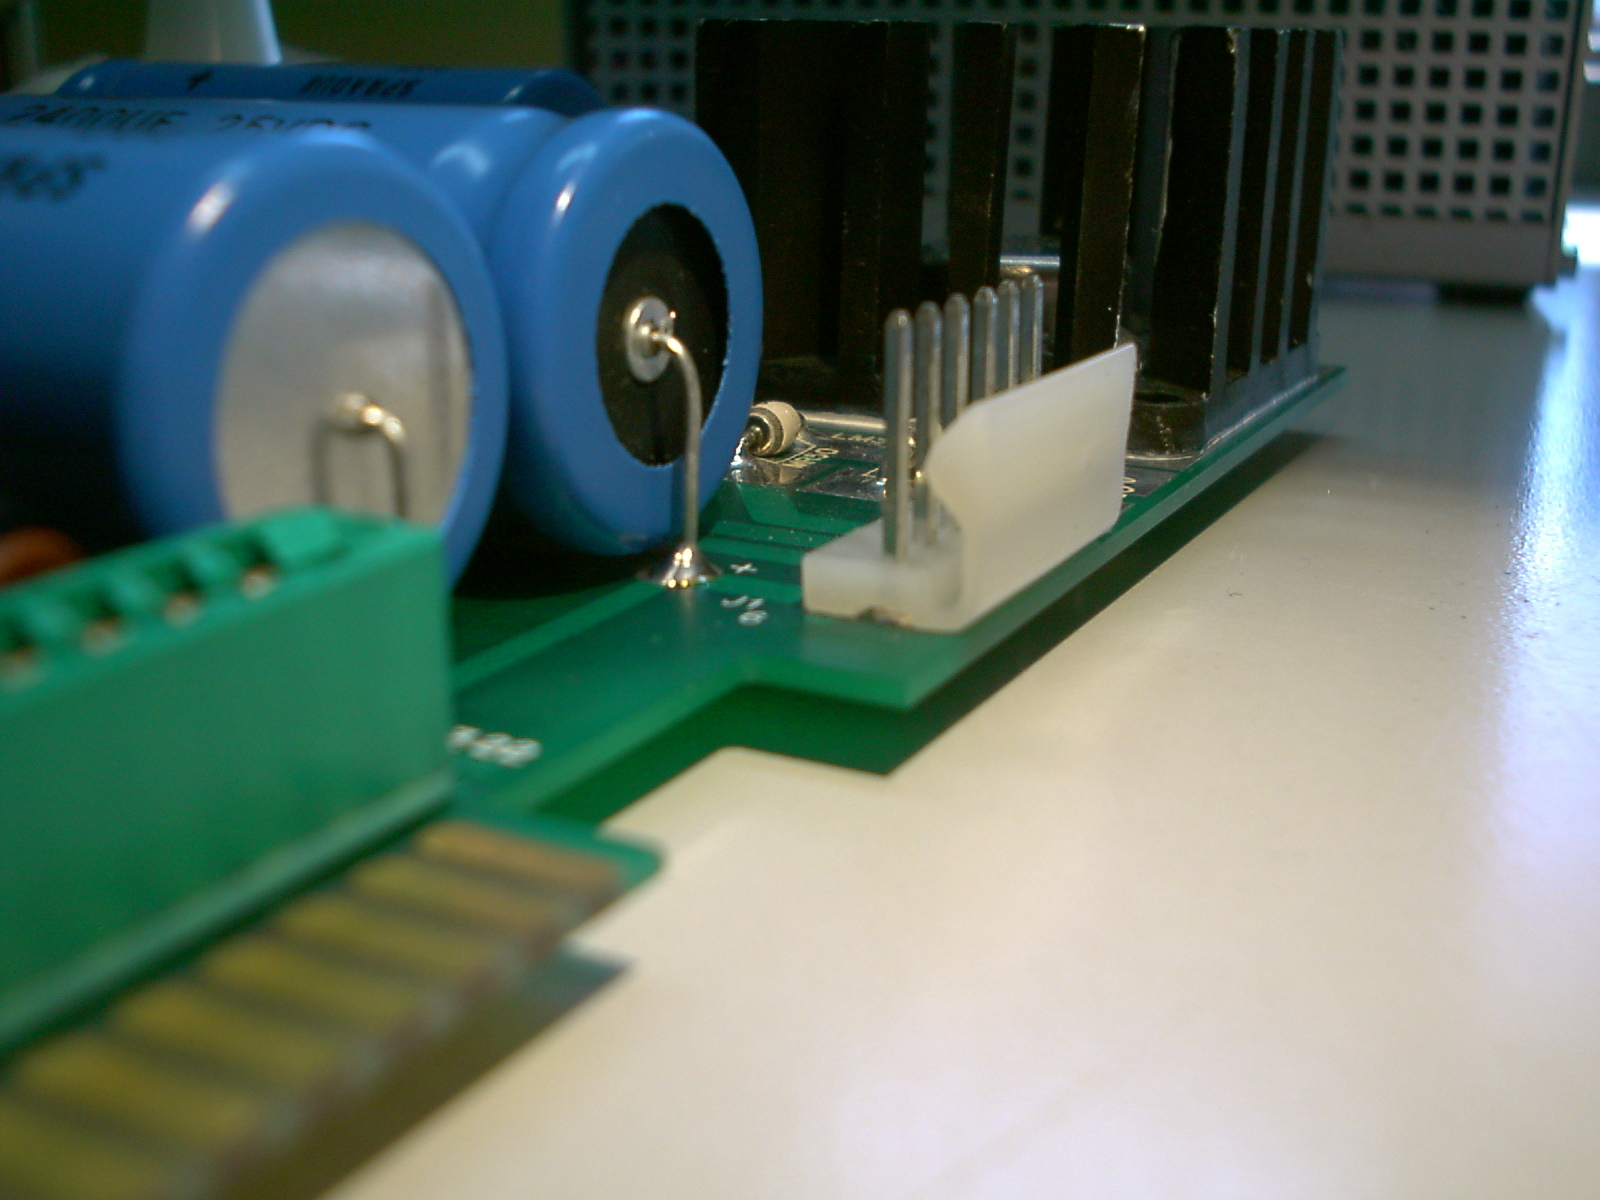 Location of possible short circuit at solder bead